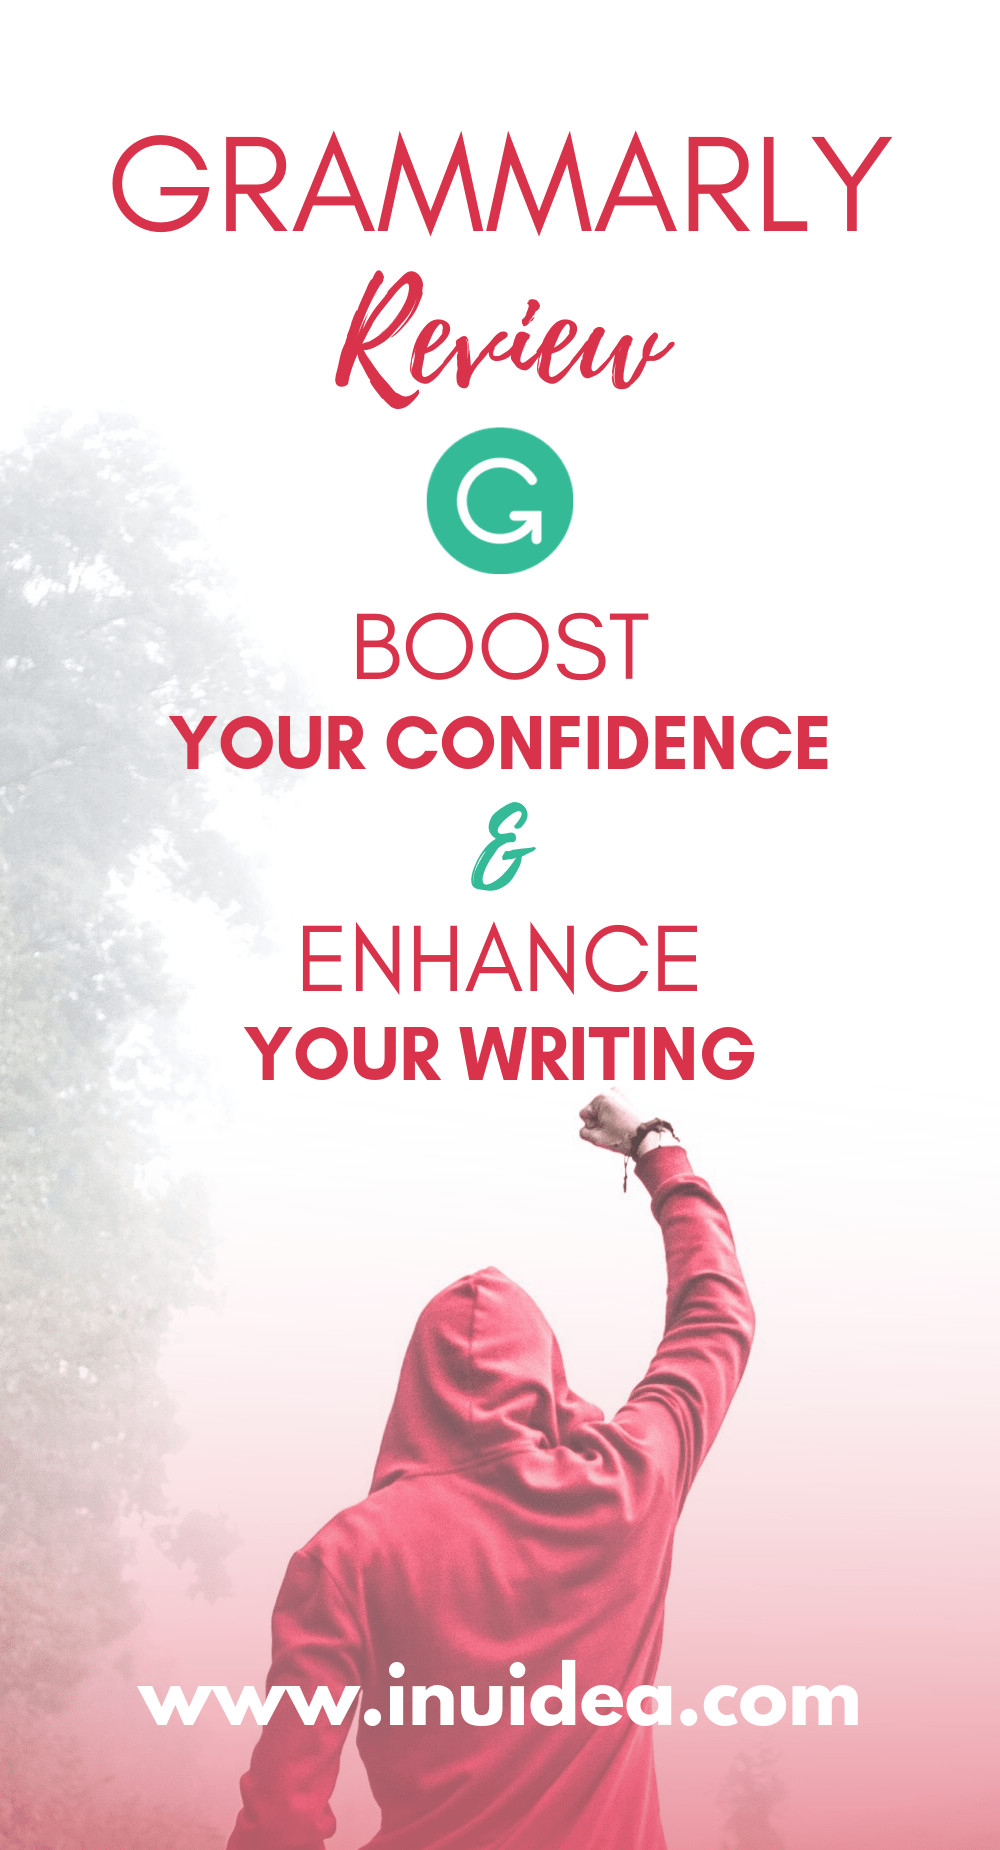 How To Do Grammarly Report